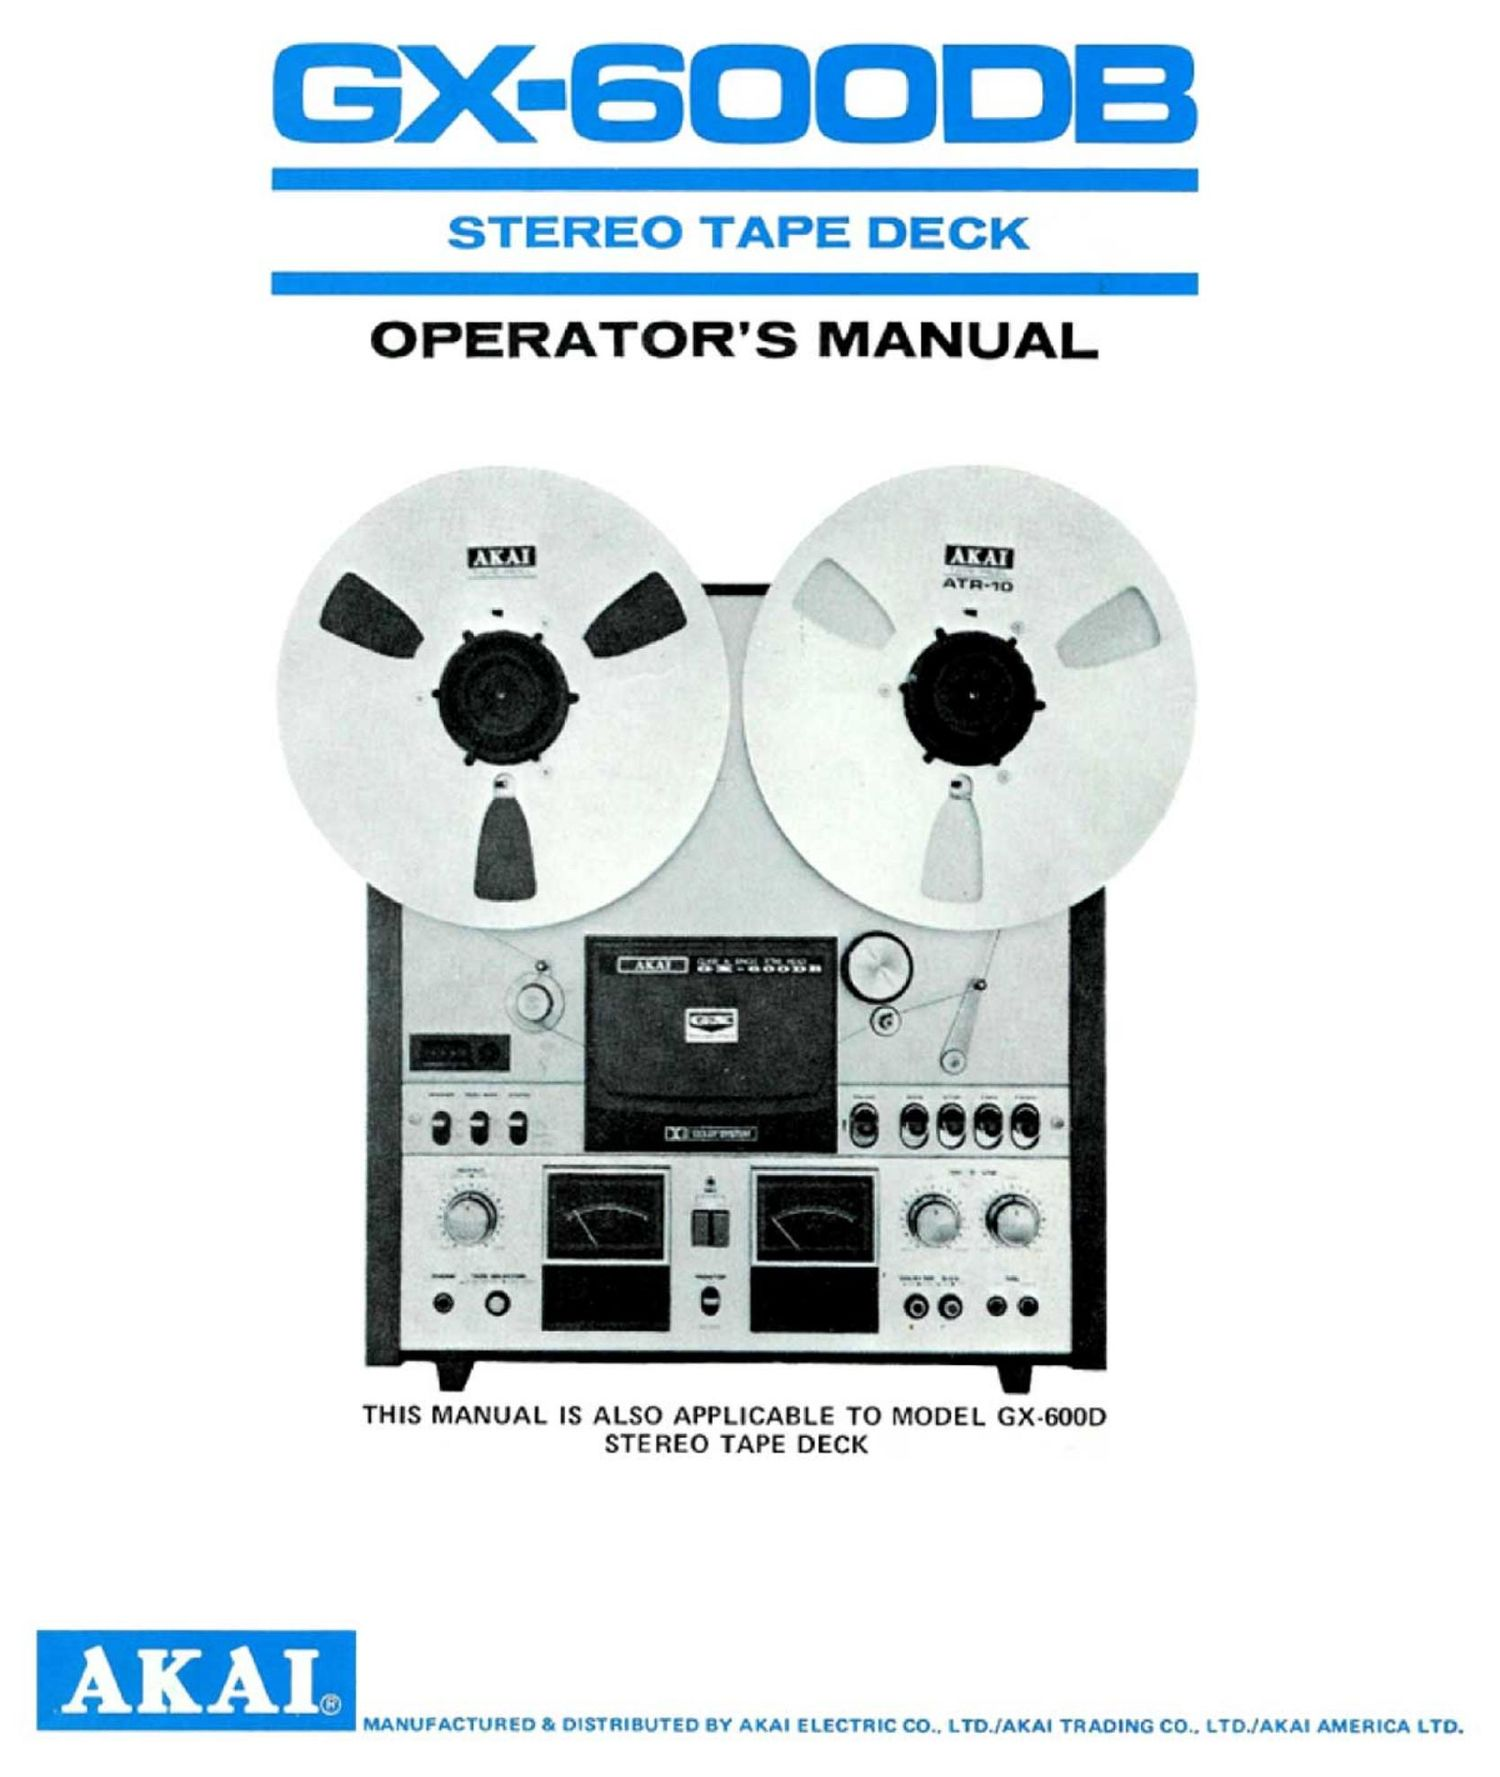 Akai GX 600 DB Owners Manual